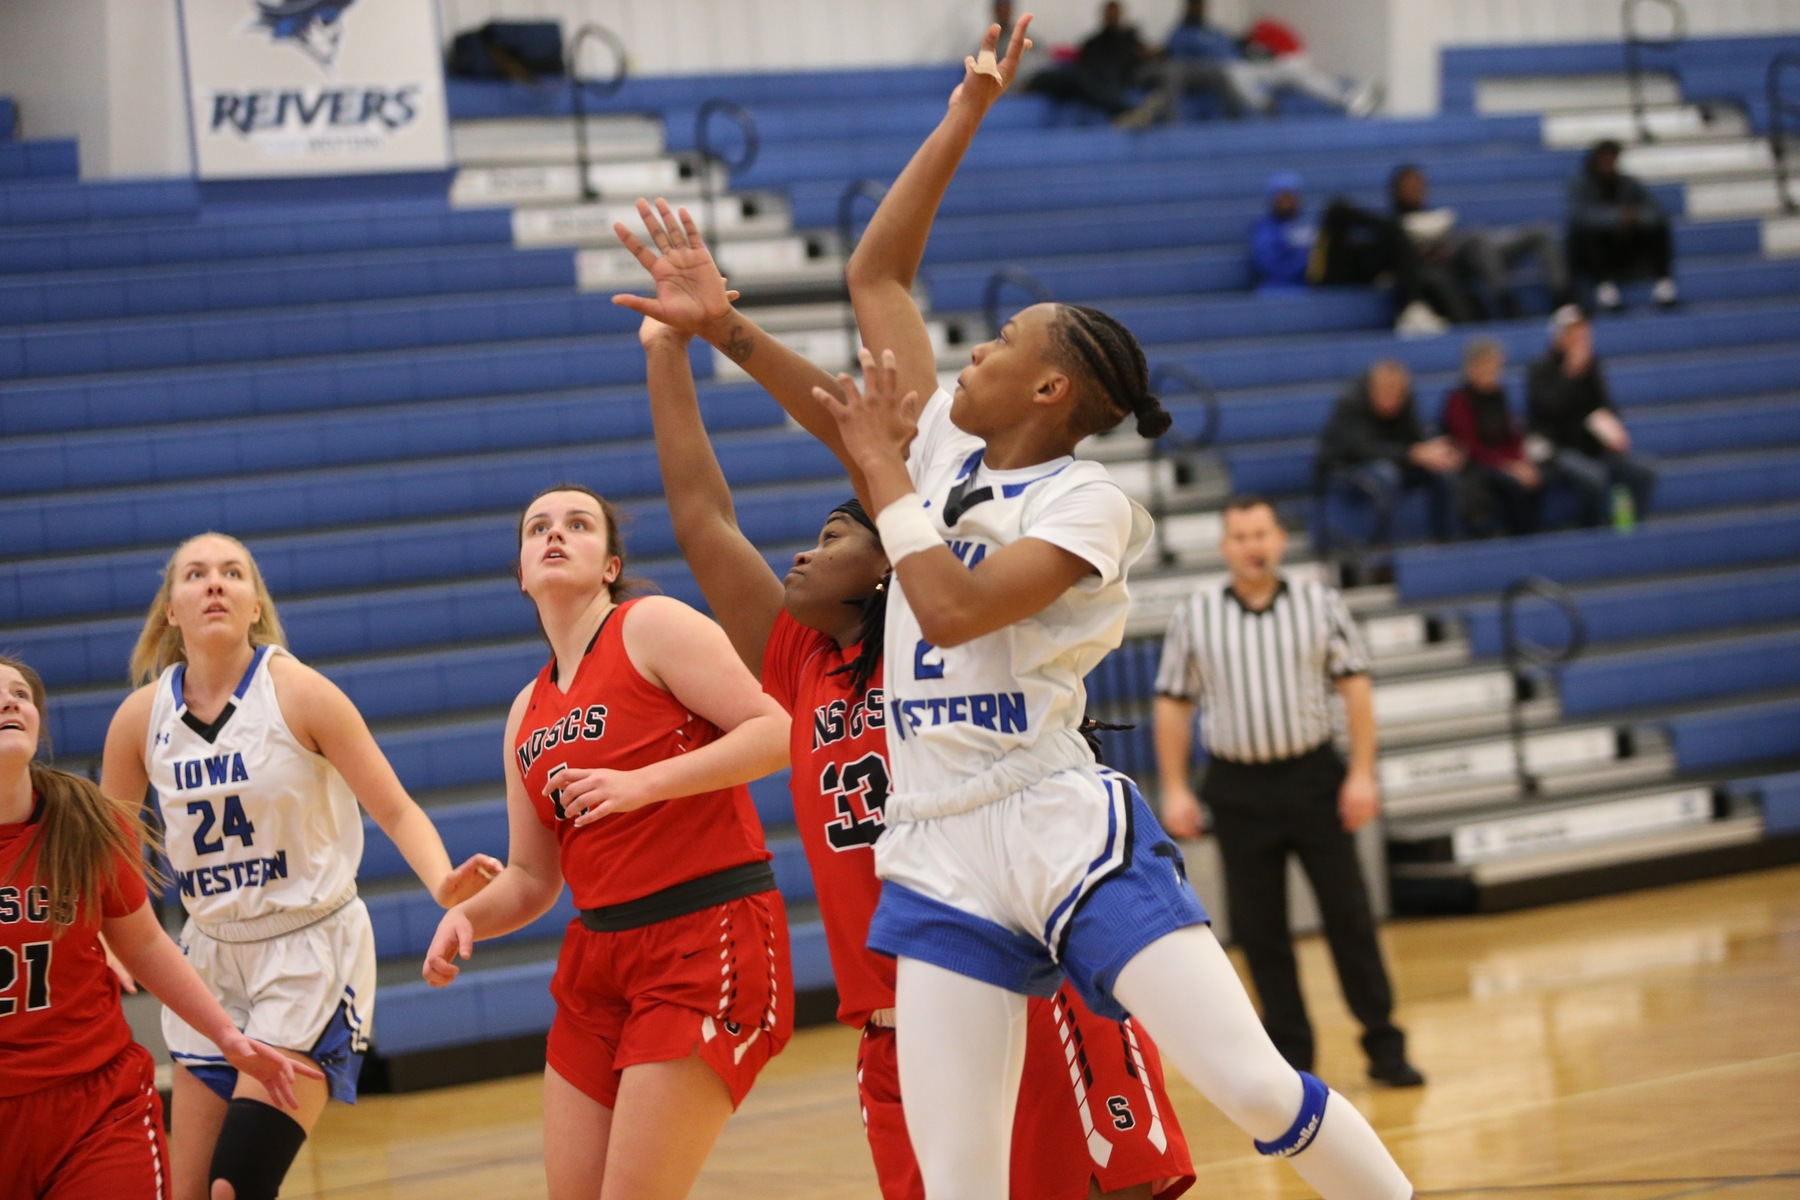 Reiver Women remain undefeated at home